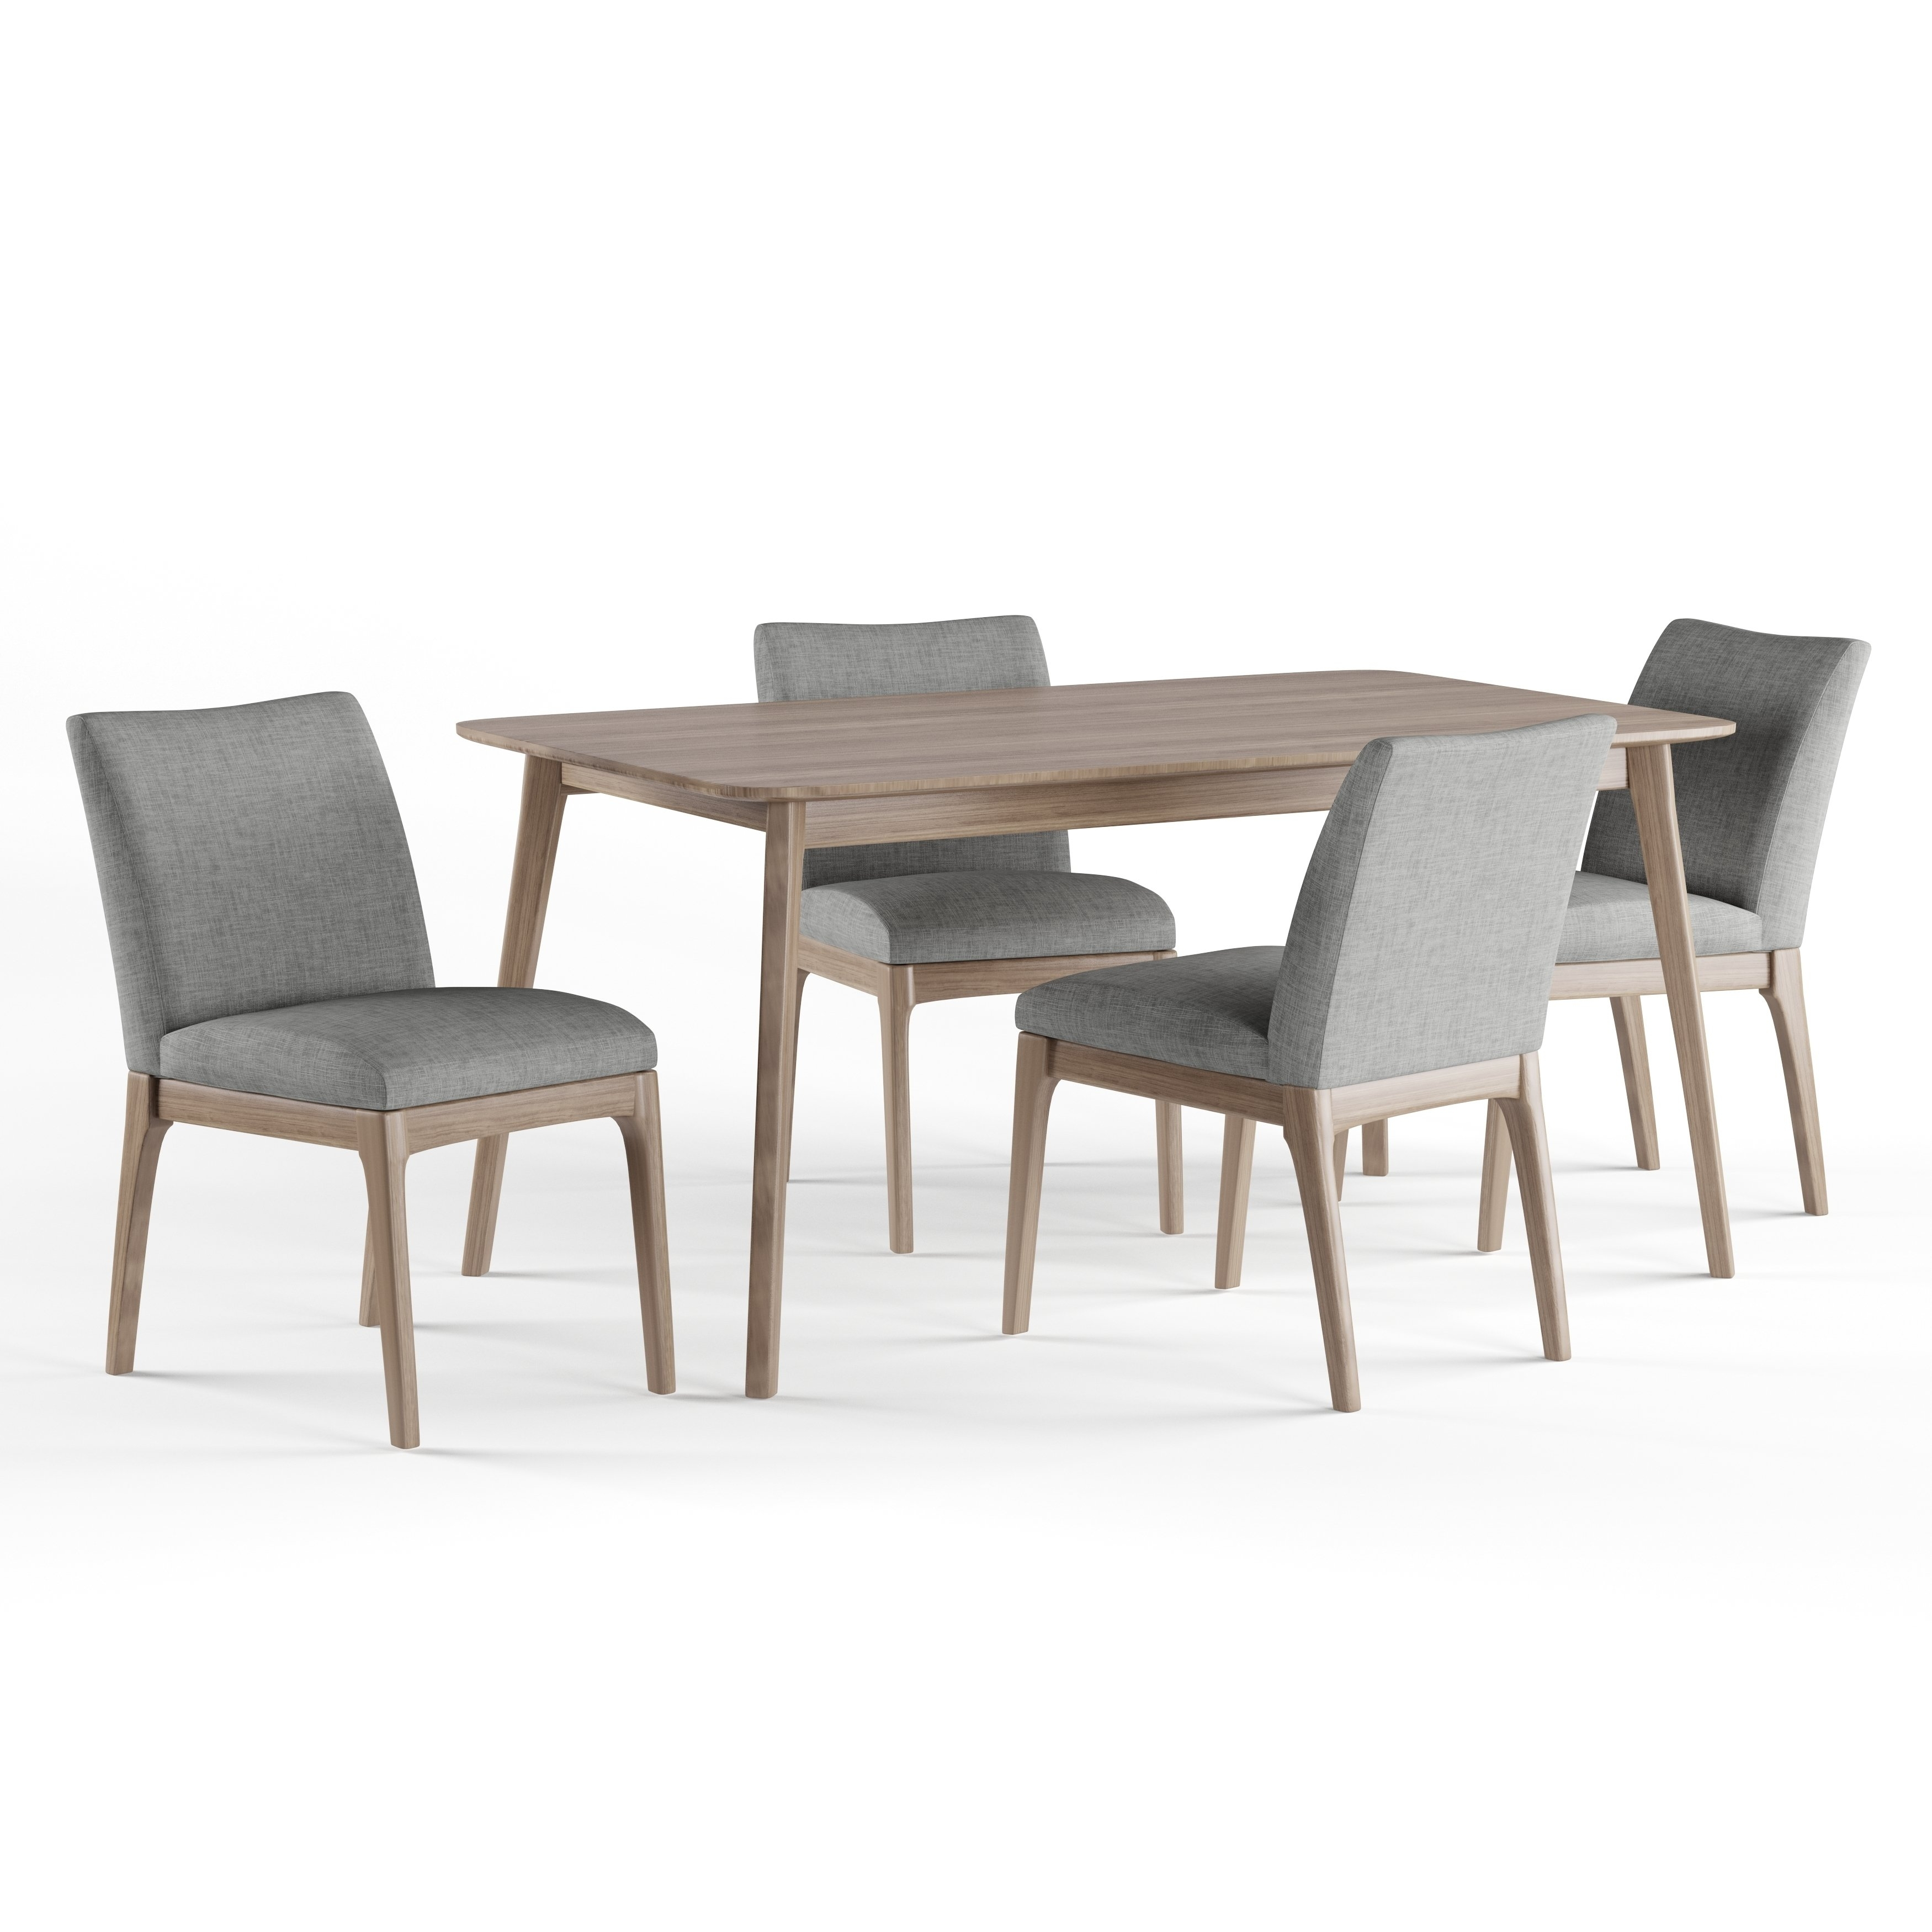 Buy Kitchen & Dining Room Sets Online At Overstock | Our Best Throughout 2018 Craftsman 5 Piece Round Dining Sets With Side Chairs (Image 5 of 20)